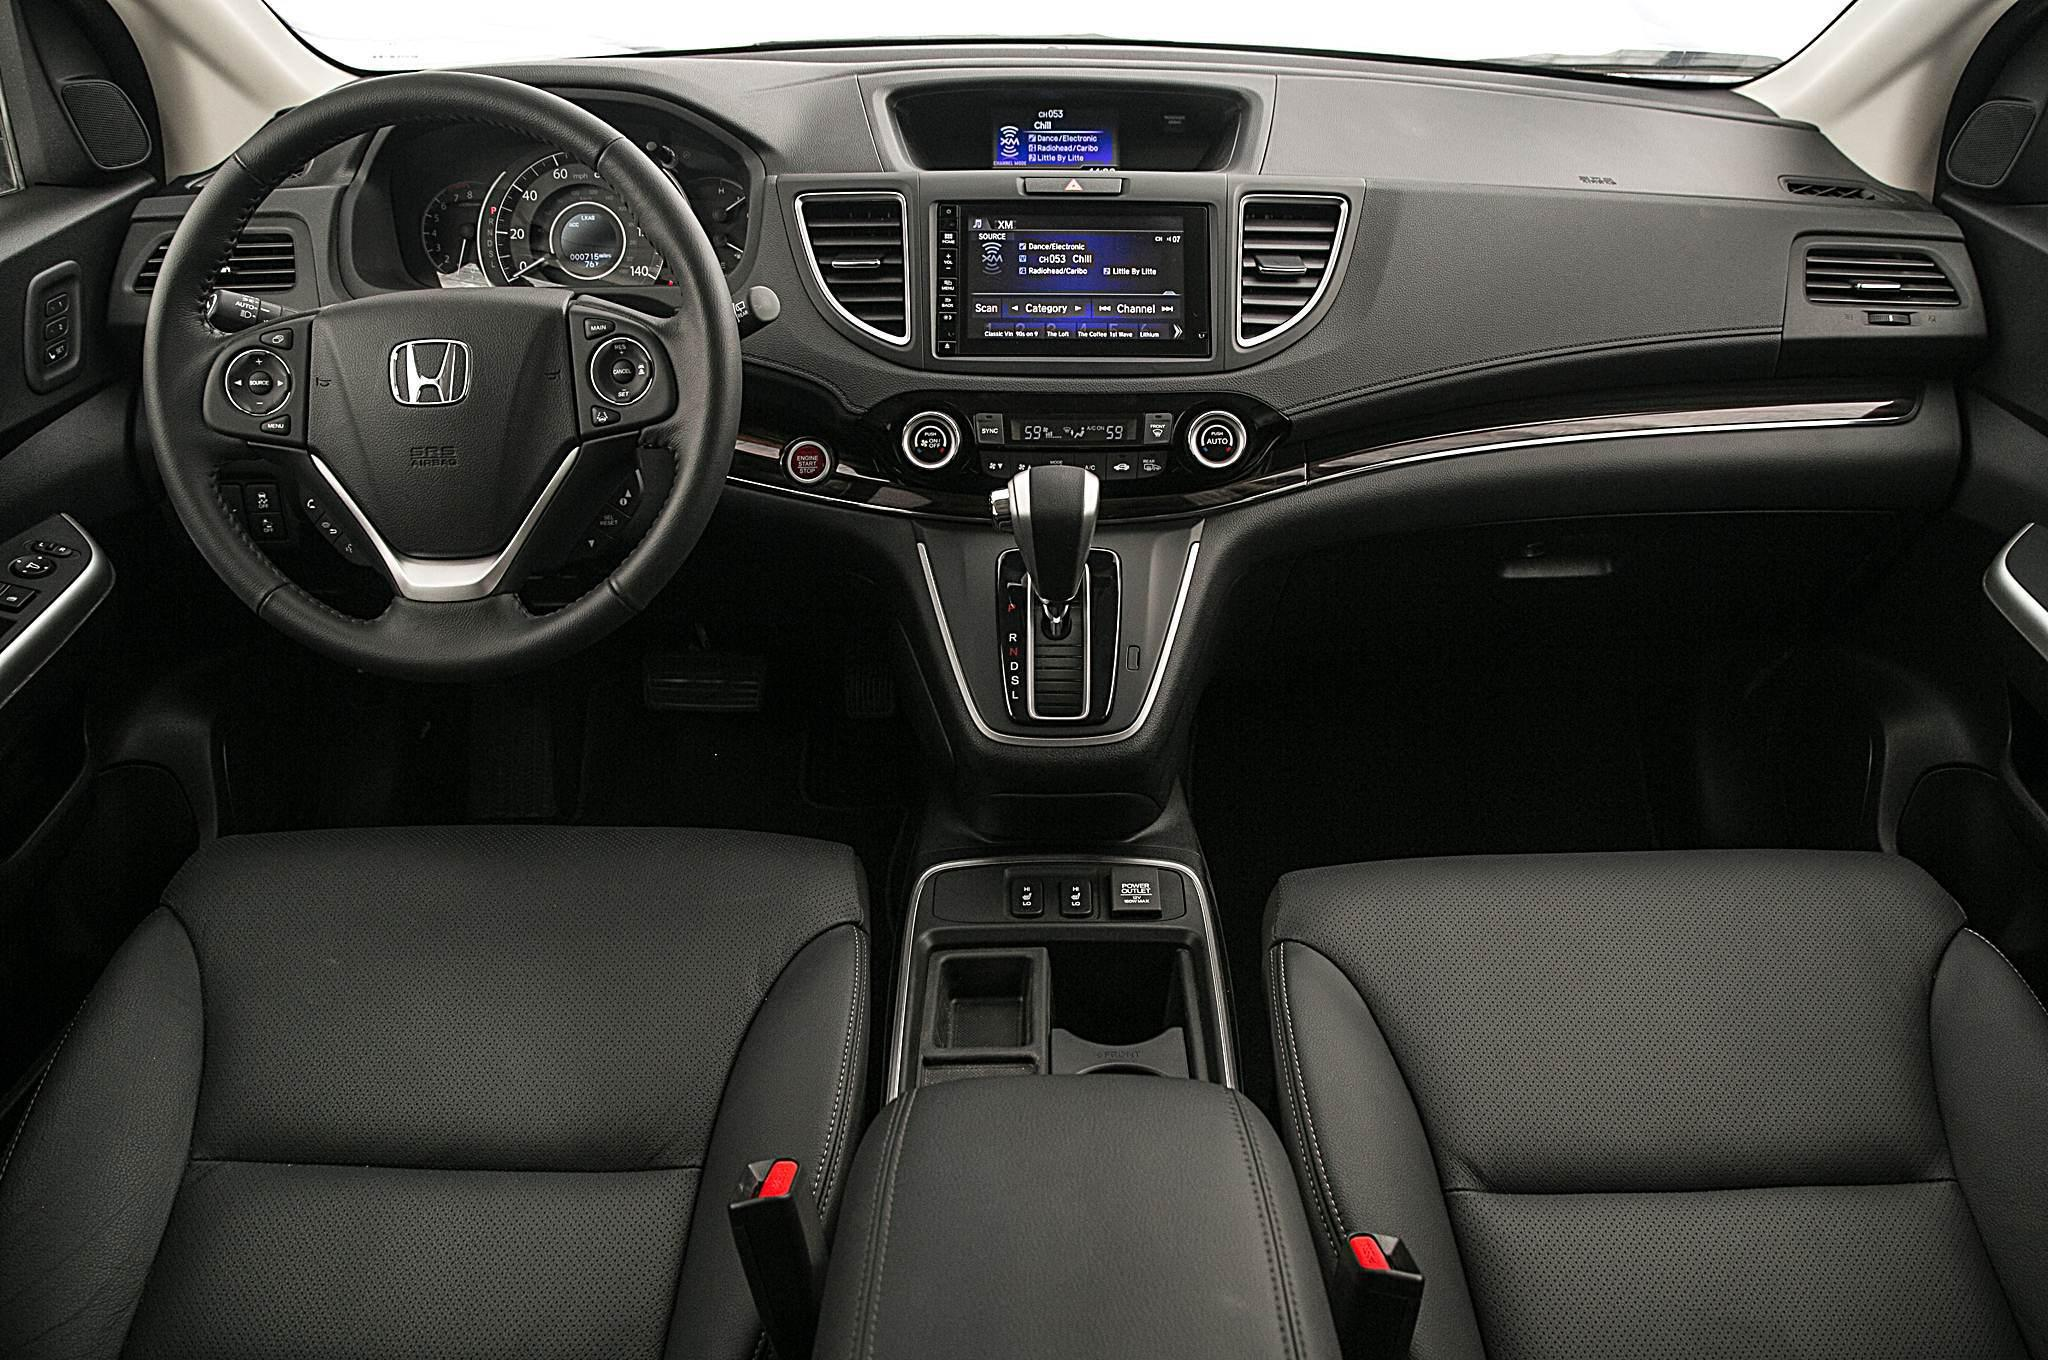 novo honda crv 2016 2017 pre o consumo ficha t cnica fotos. Black Bedroom Furniture Sets. Home Design Ideas